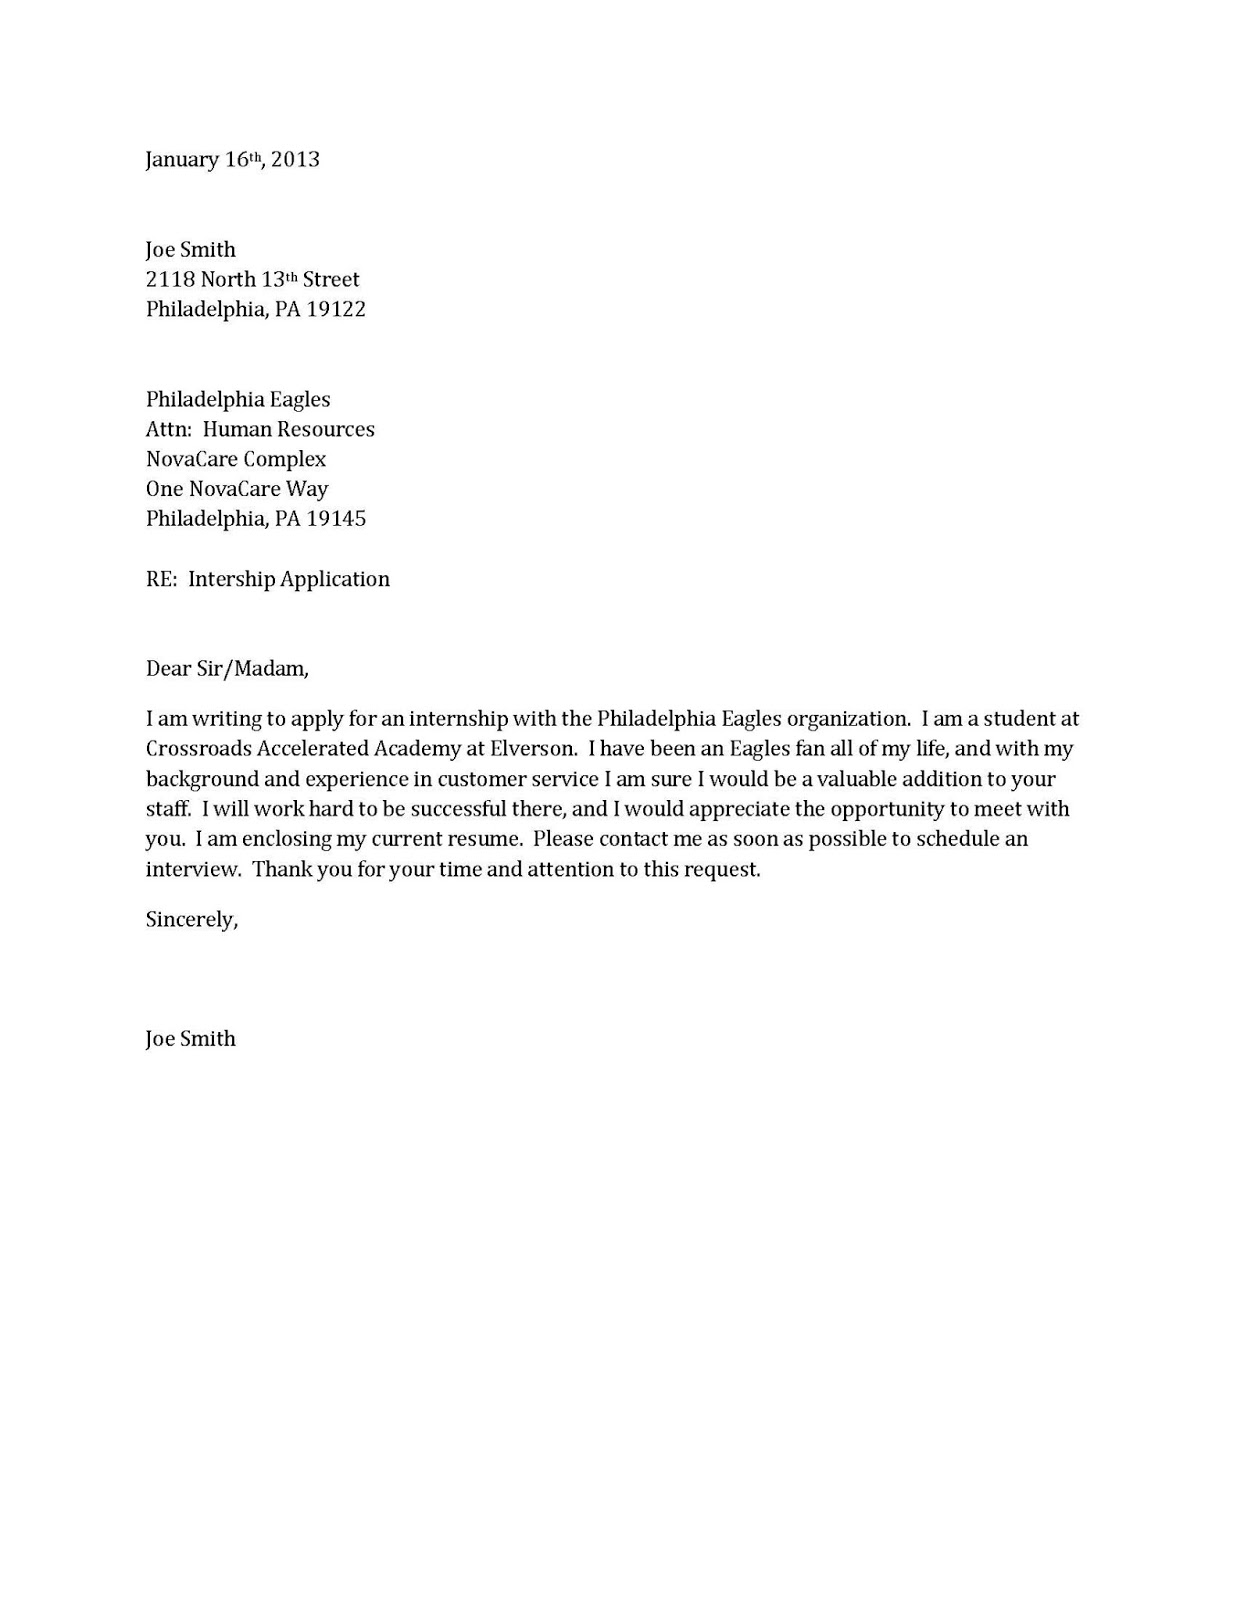 cover letter for resume example ~ Gopitch.co